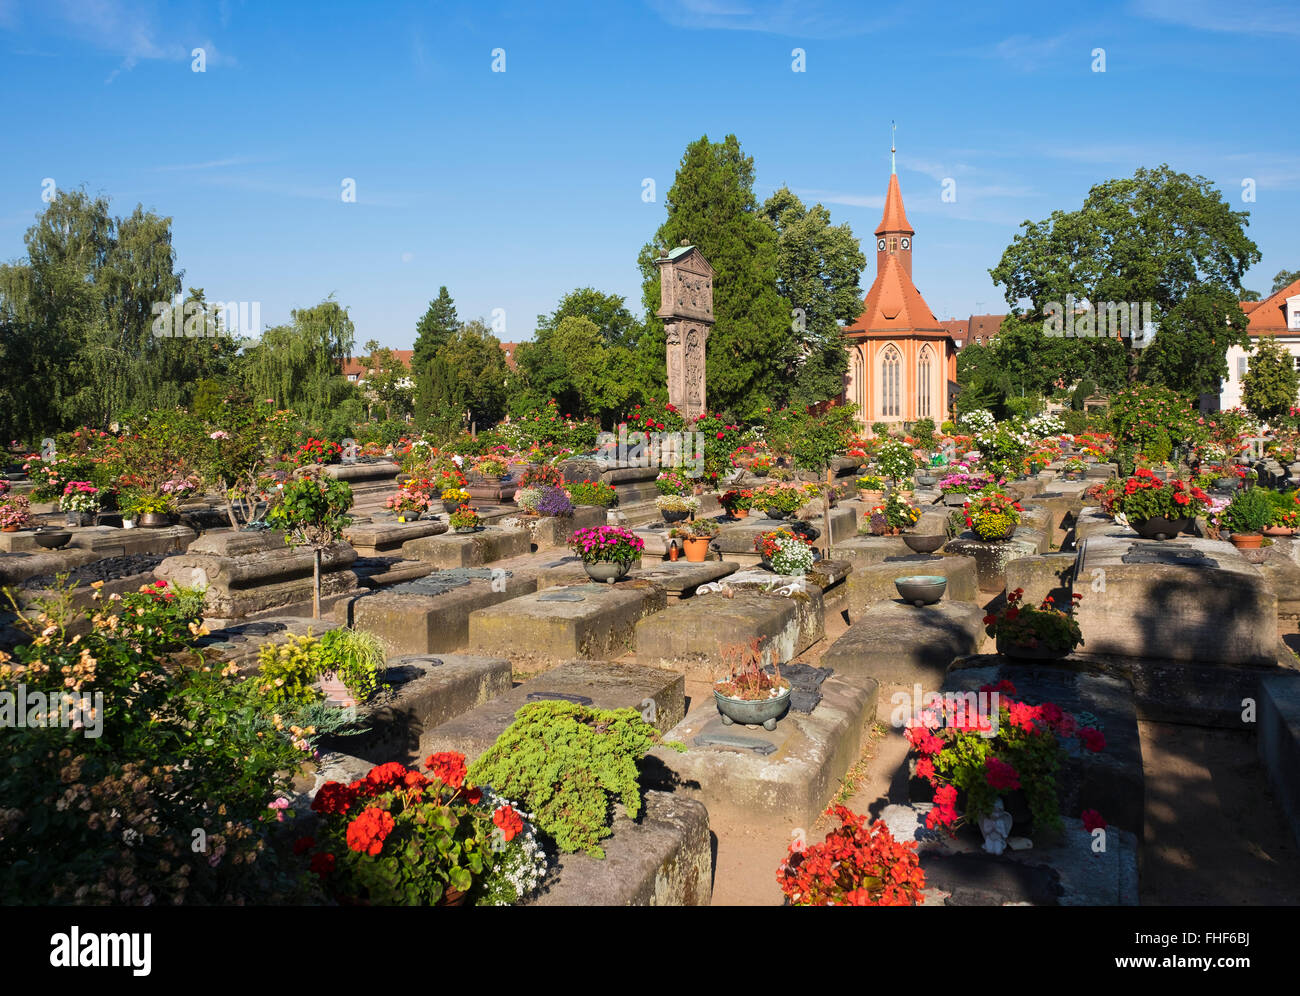 Old graves at the St. Johannis cemetery with St. John's Church, St. Johannis district, Nuremberg, Middle Franconia, - Stock Image